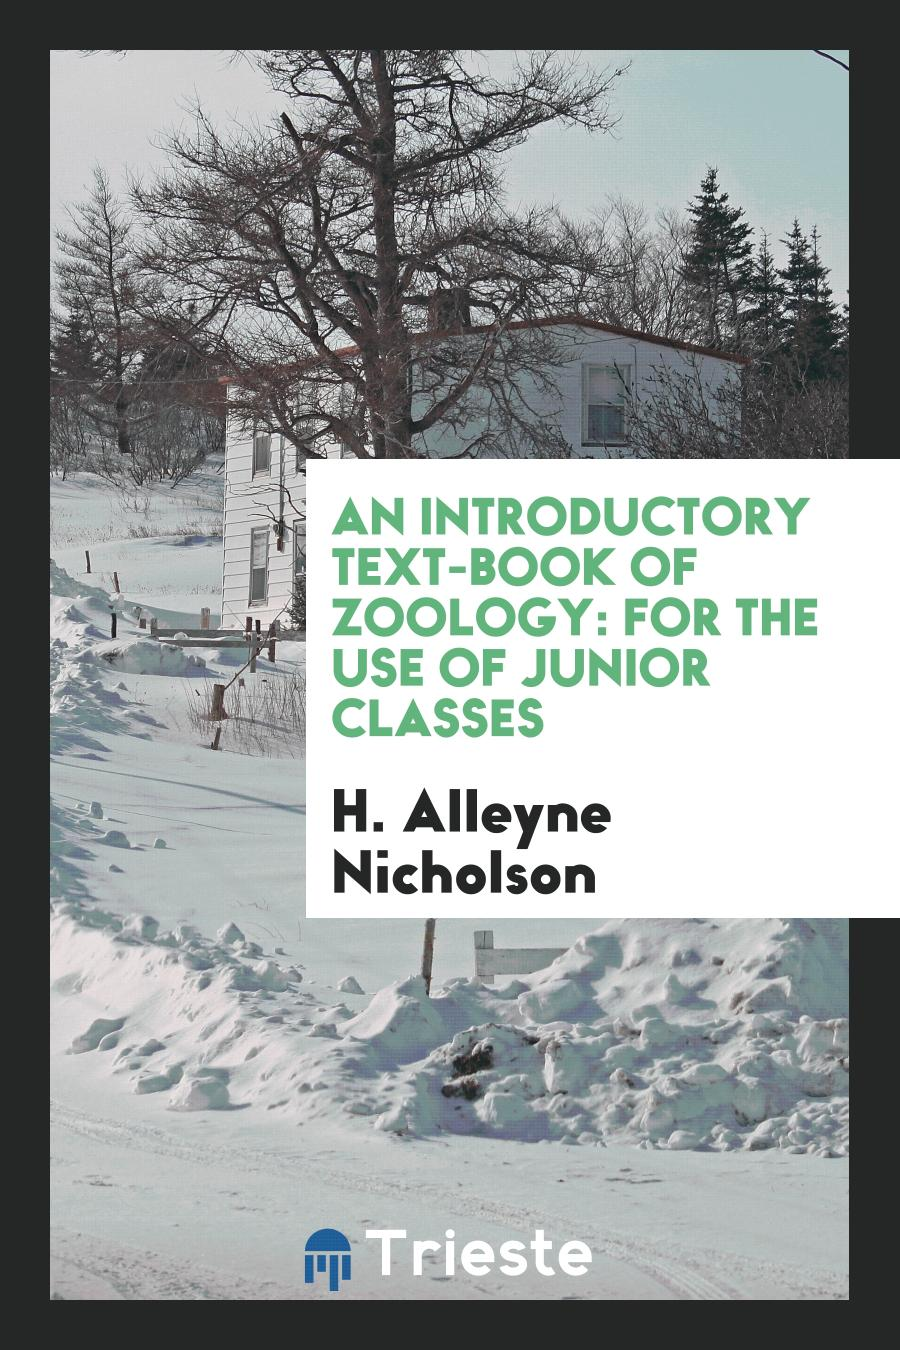 An Introductory Text-Book of Zoology: For the Use of Junior Classes